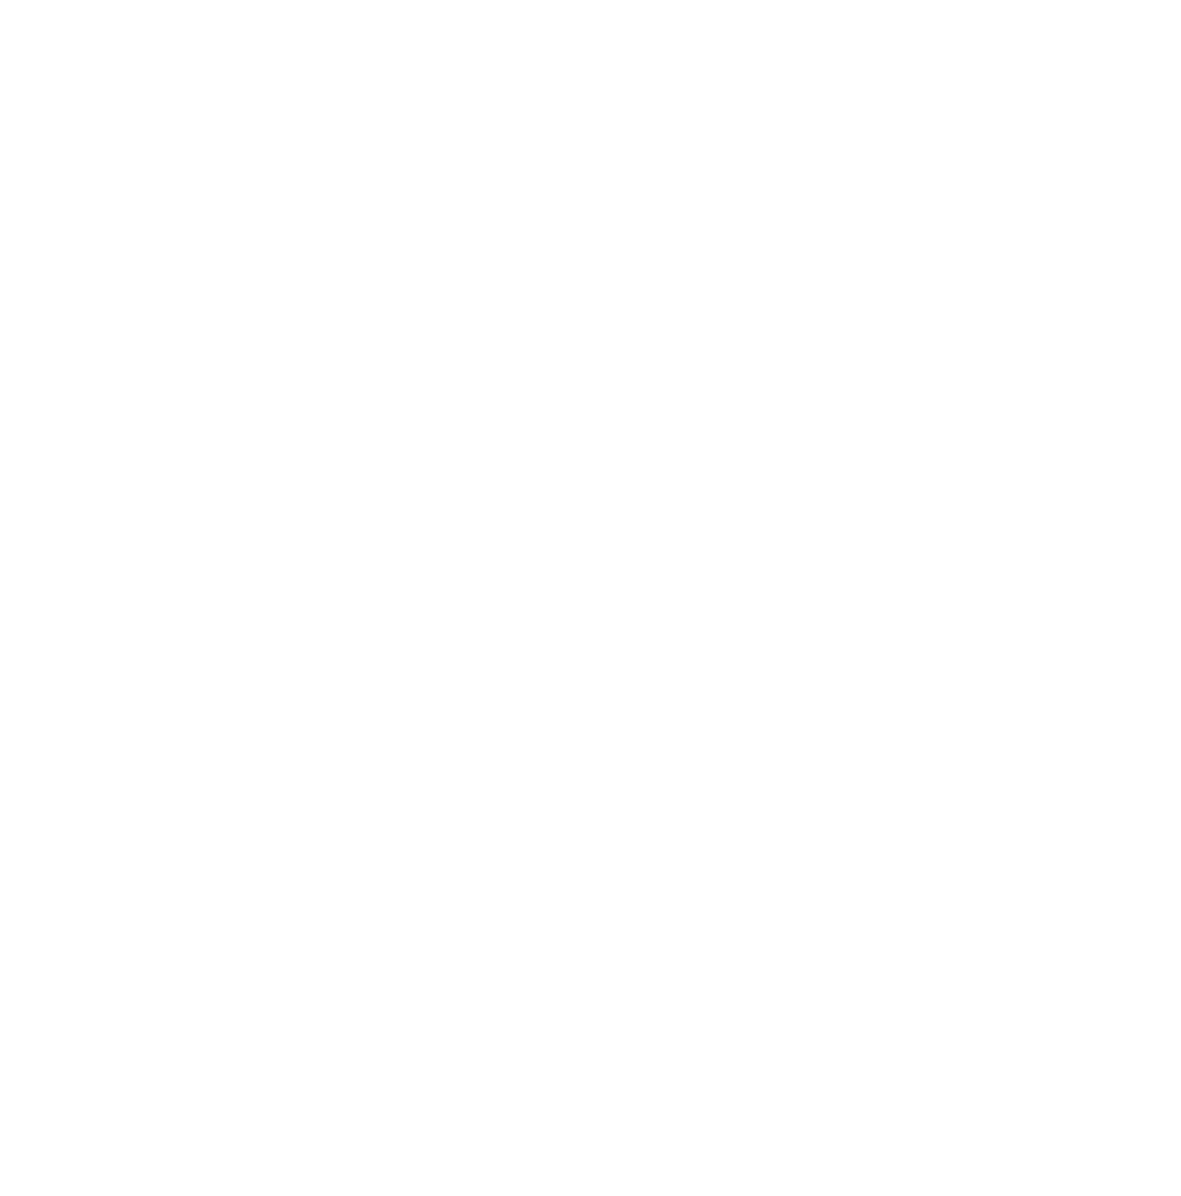 NorthSails_Bullet_white